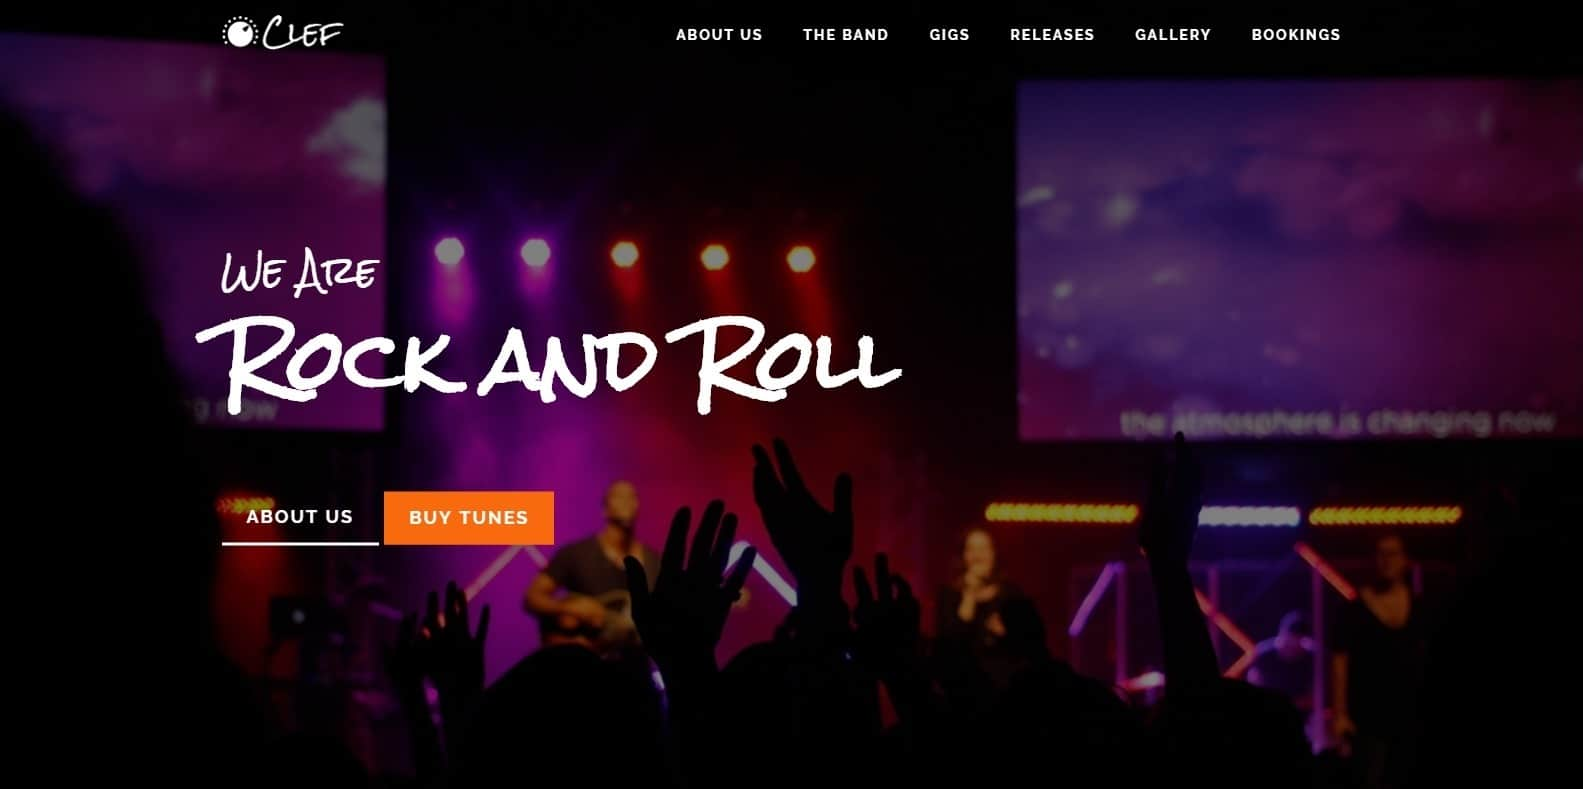 clef-html-free-website-template